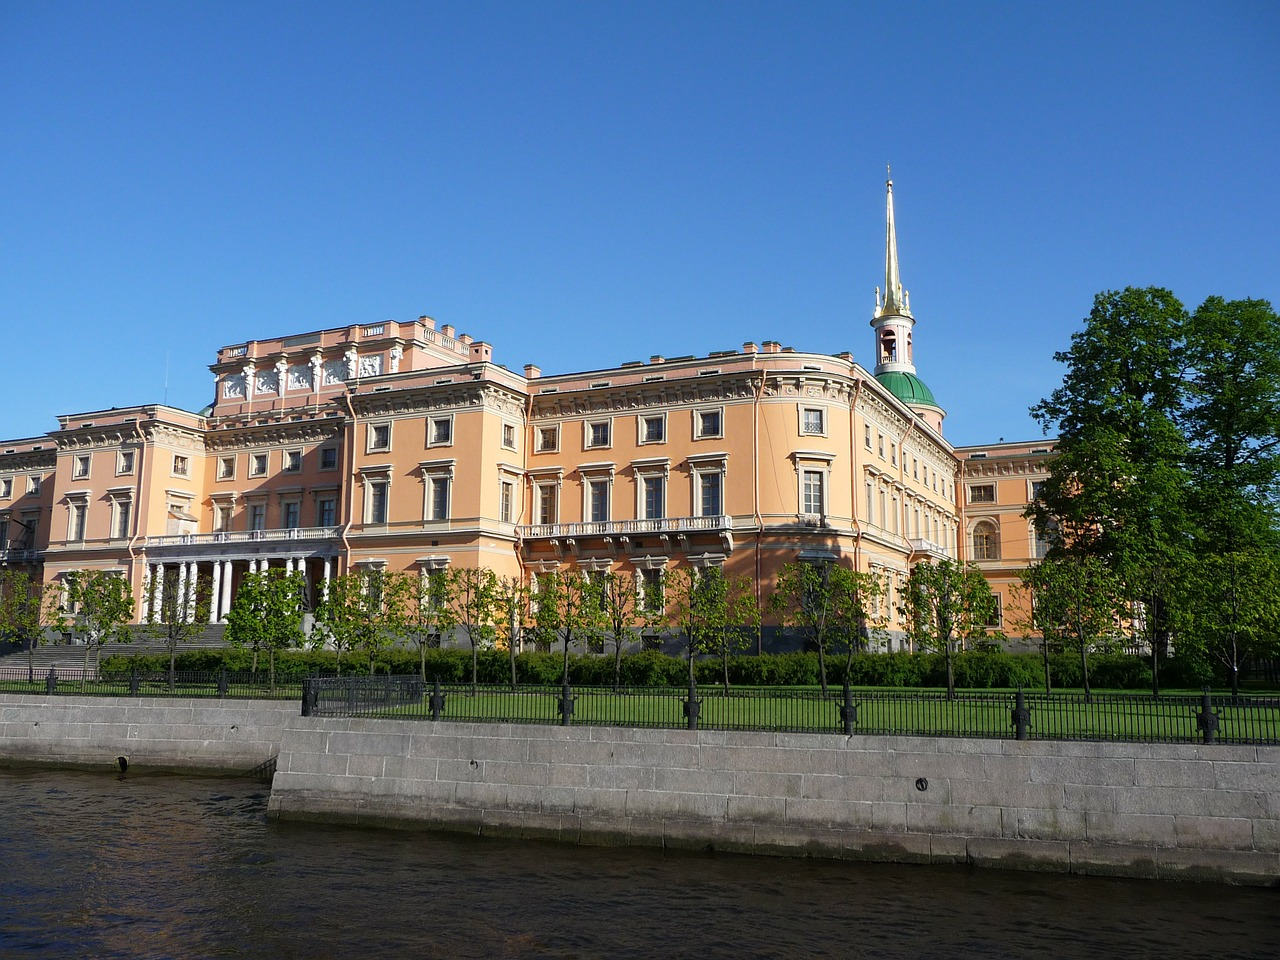 st petersburg famous sightseeing mikhailovsky palace free photo